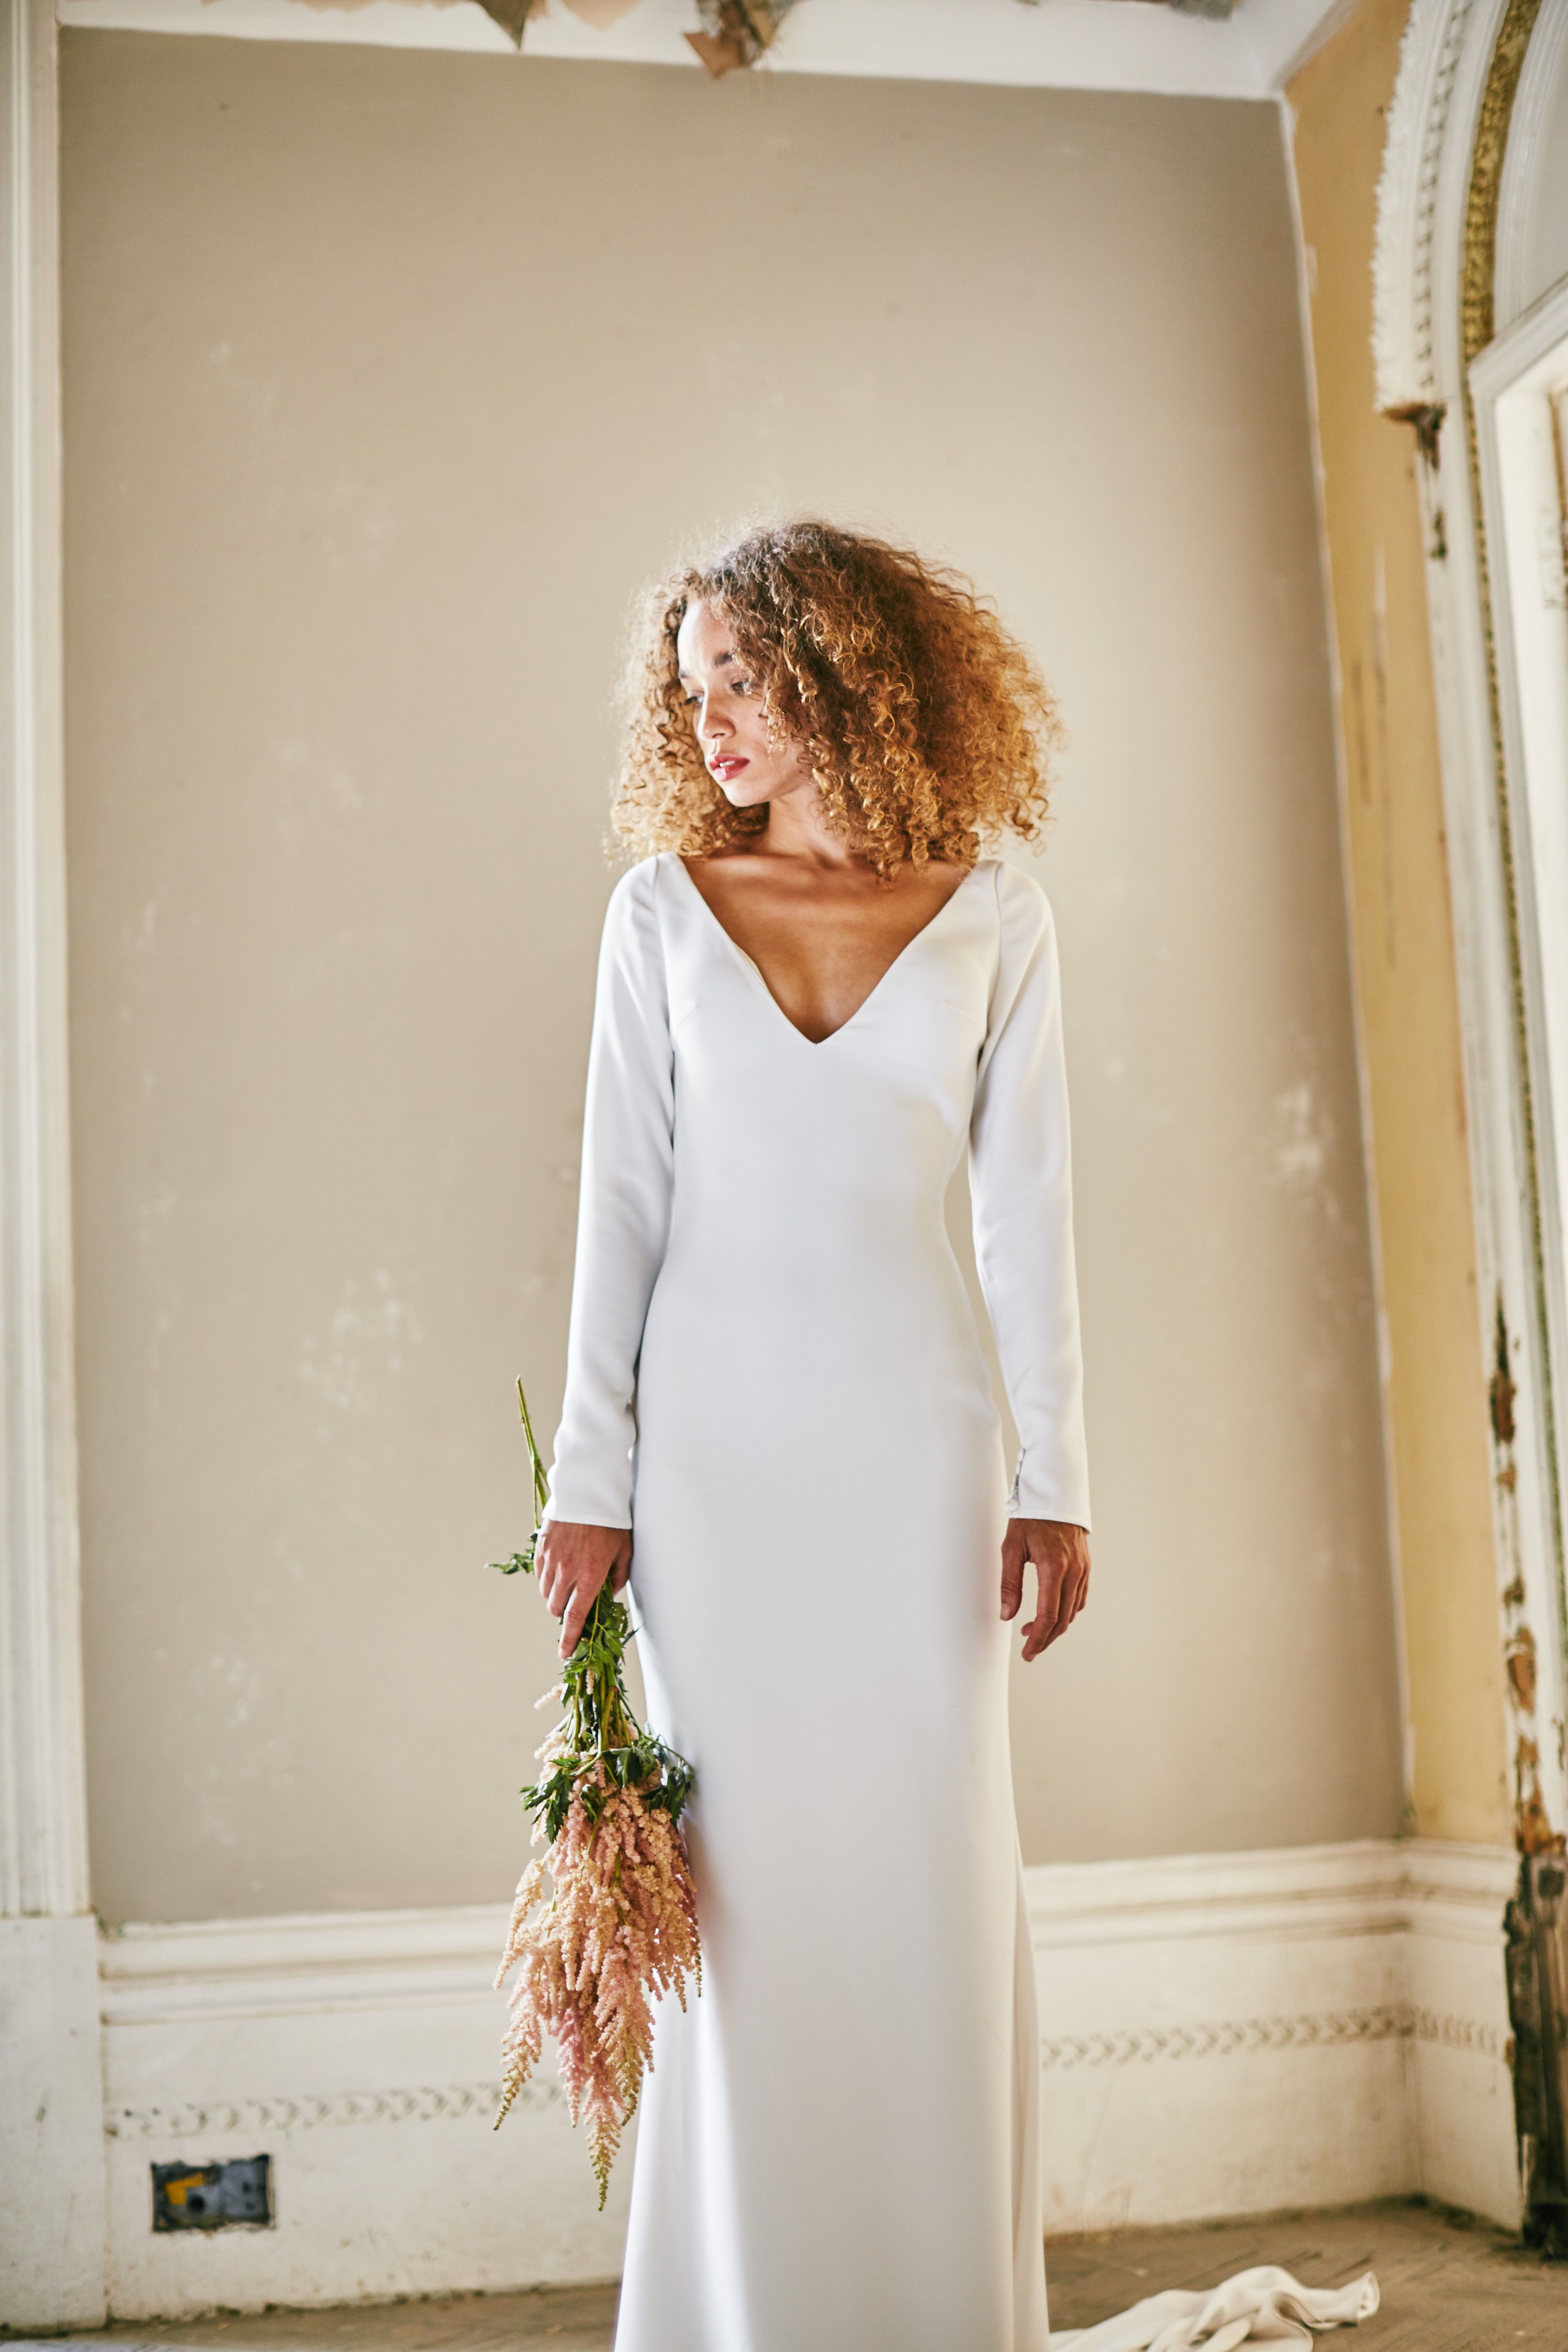 Olive Made With Love Bridal Long Sleeve Fitted Crepe Wedding Dress With V Neckline And Wedding Dresses Australian Wedding Dresses Wedding Dresses Romantic [ 5760 x 3840 Pixel ]